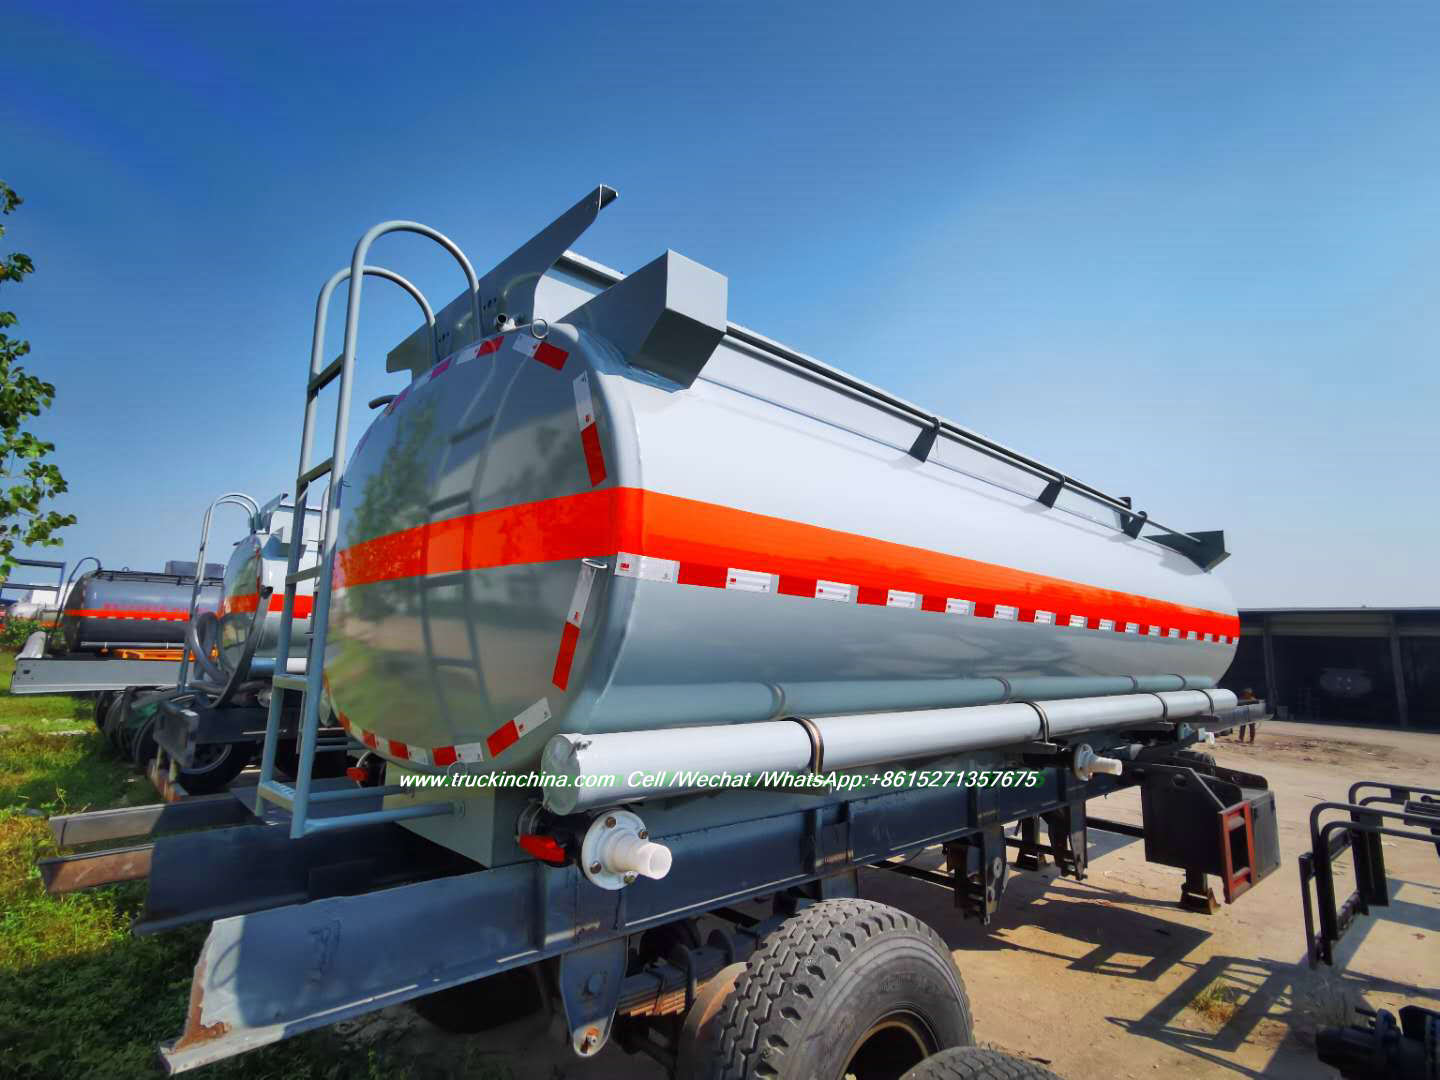 Steel Lined LDPE 18mm Moblie Hydrochloric Acid Tank Body 13m3 -16m3 to Vietnam